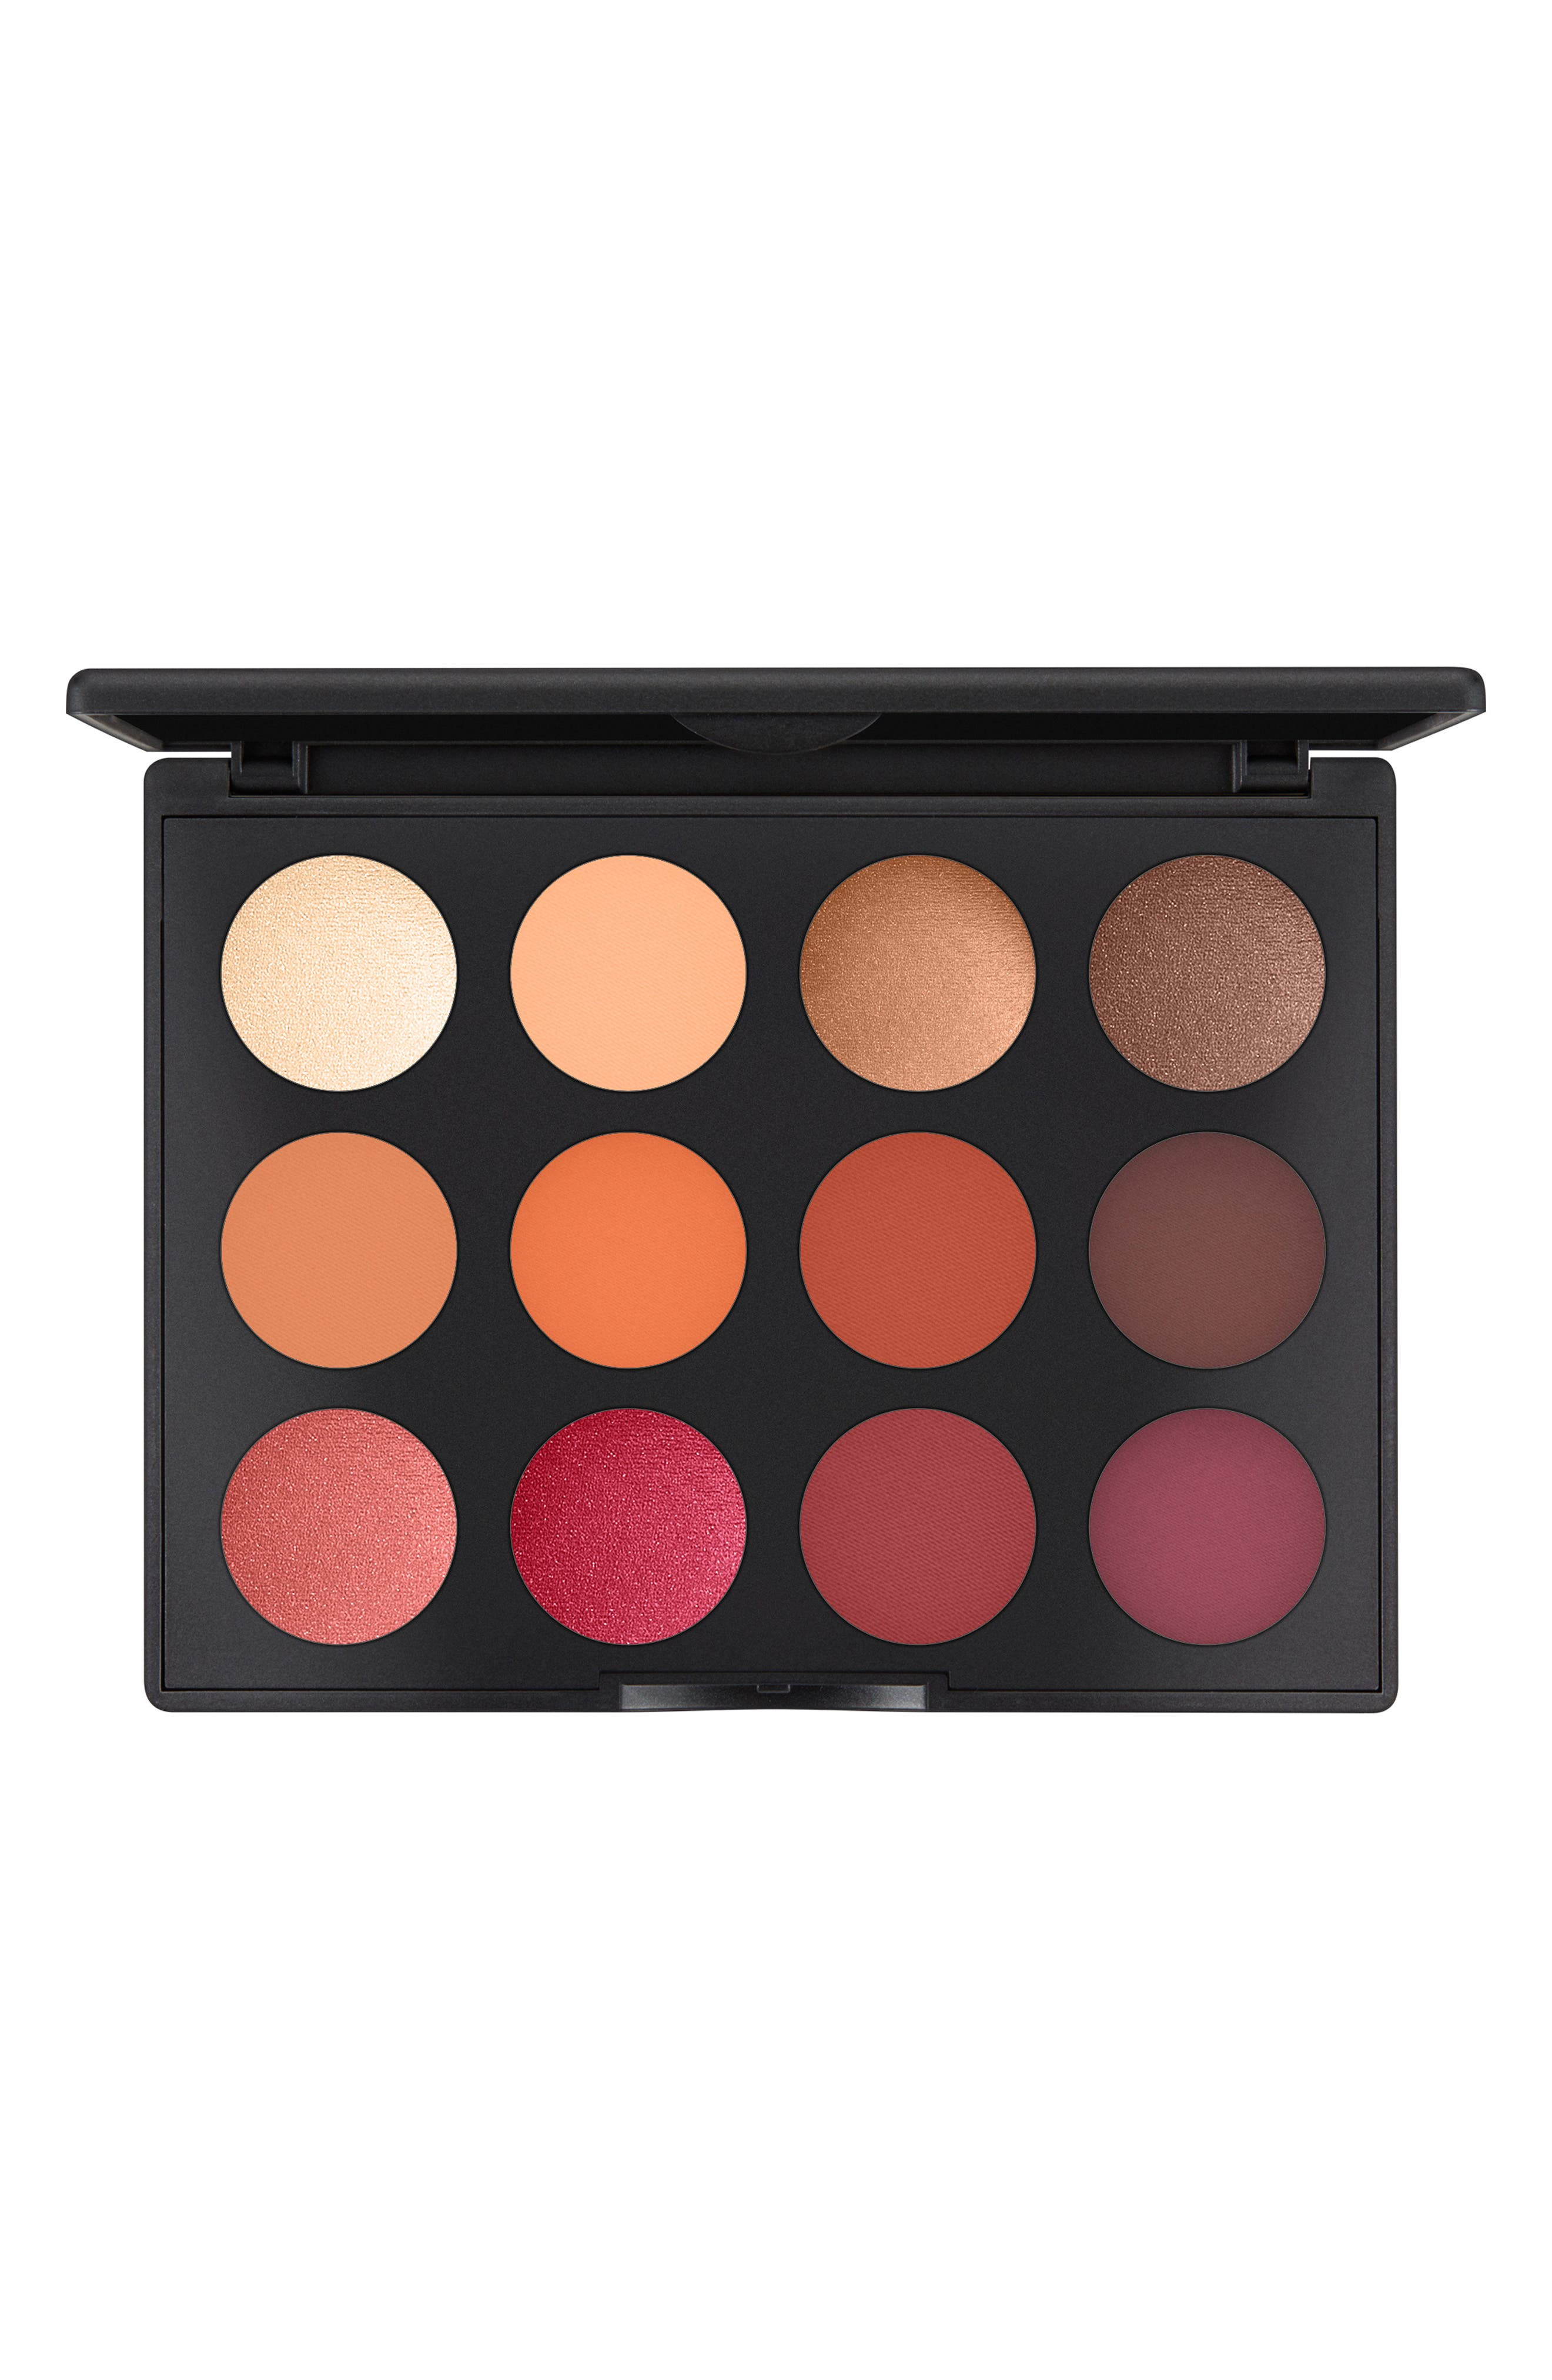 MAC COSMETICS MAC Art Library Eyeshadow Palette, Main, color, FLAME-BOYANT